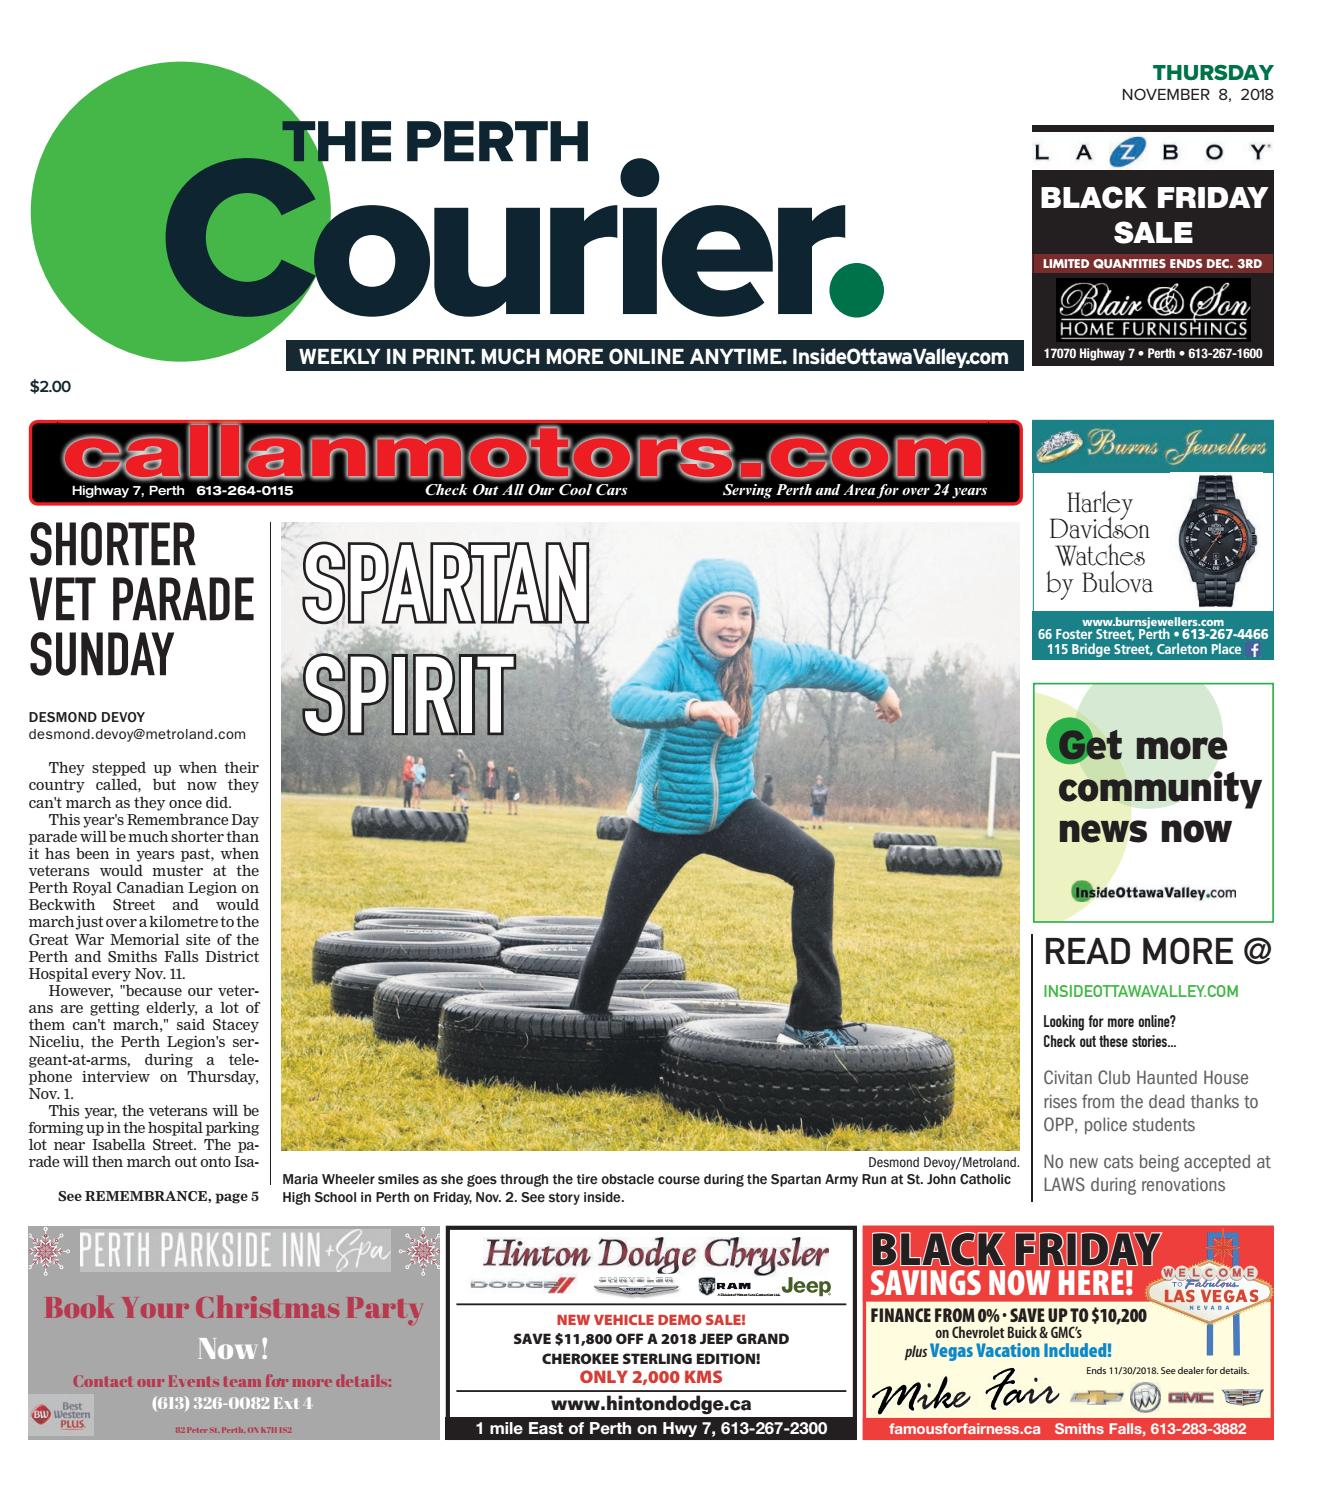 fc611333aa41 OTV P A 20181108 by Metroland East - The Perth Courier - issuu